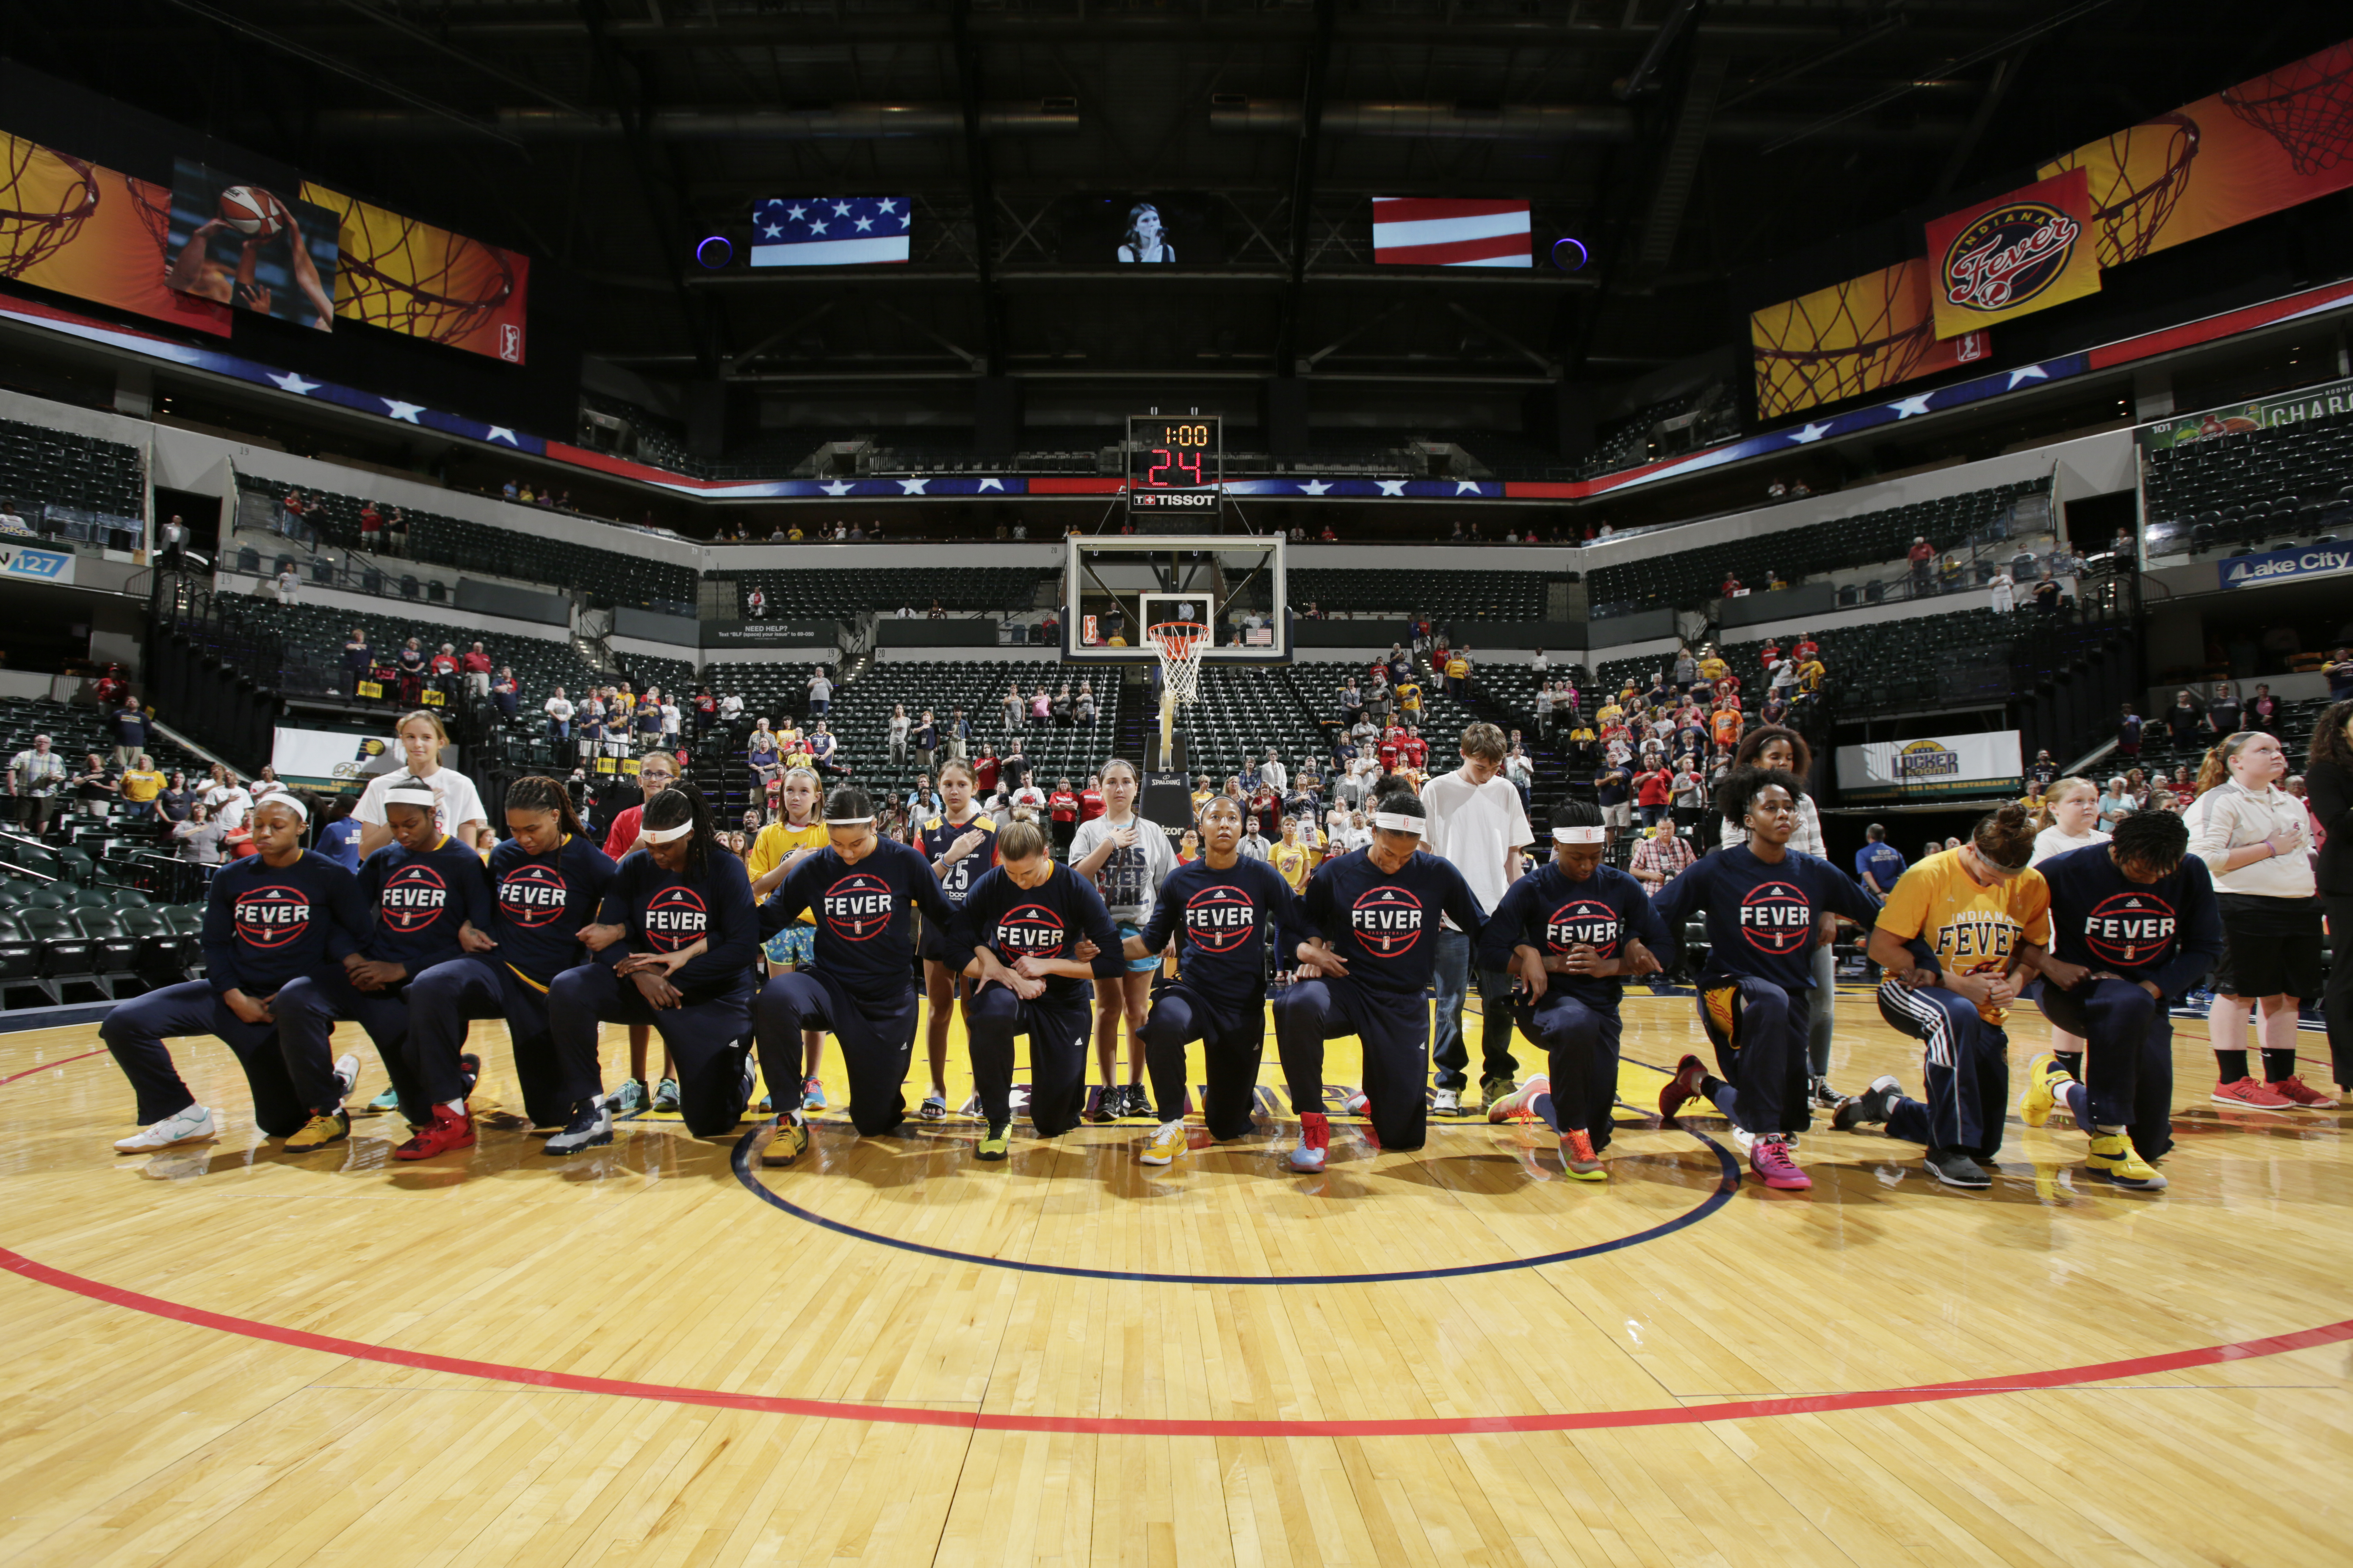 The Indiana Fever kneel during the National Anthem before the game against the Phoenix Mercury during Round One of the 2016 WNBA Playoffs on September 21, 2016 at Bankers Life Fieldhouse in Indianapolis, Indiana.